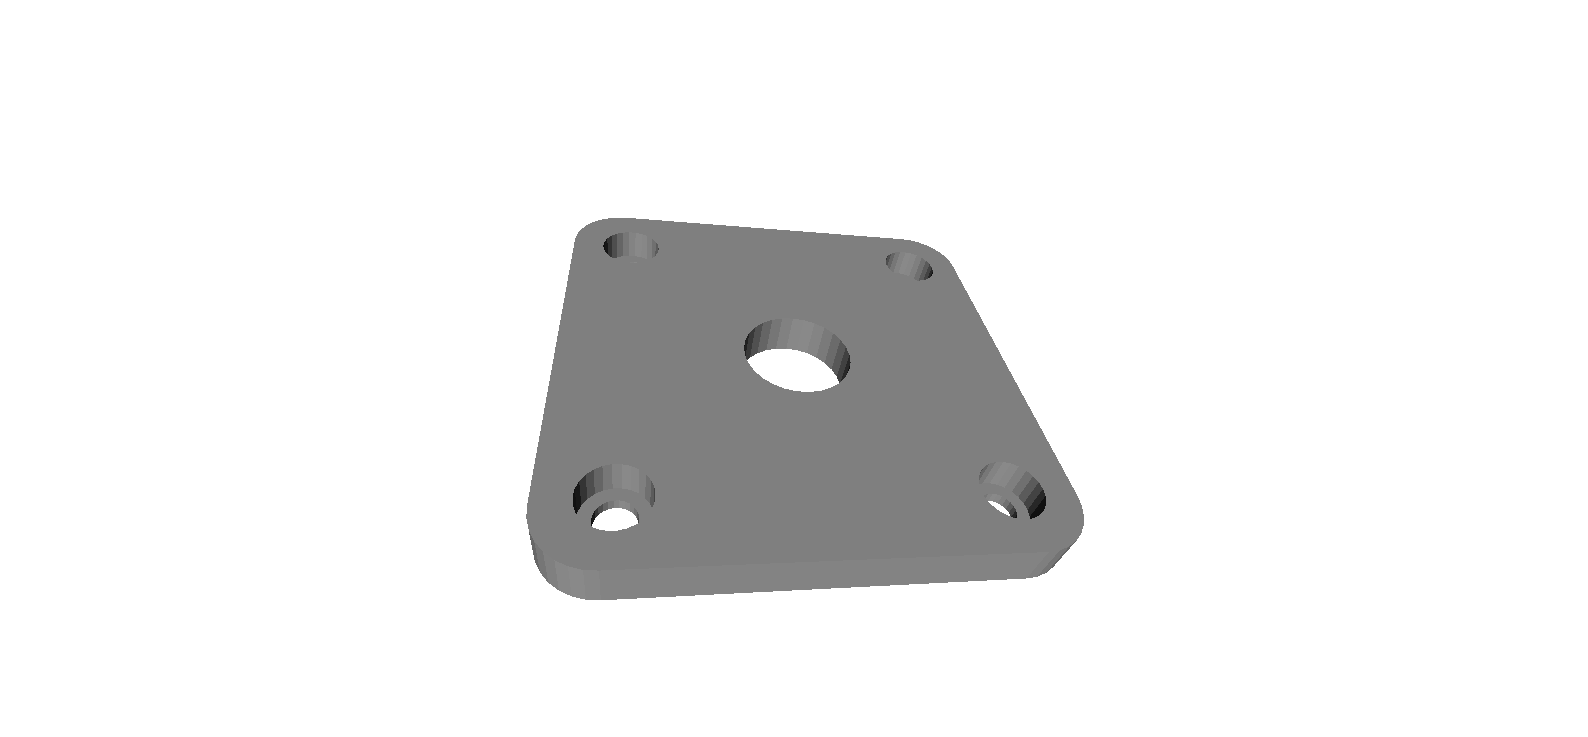 linear model/freecad/STLs/bearing constrainer cap.png